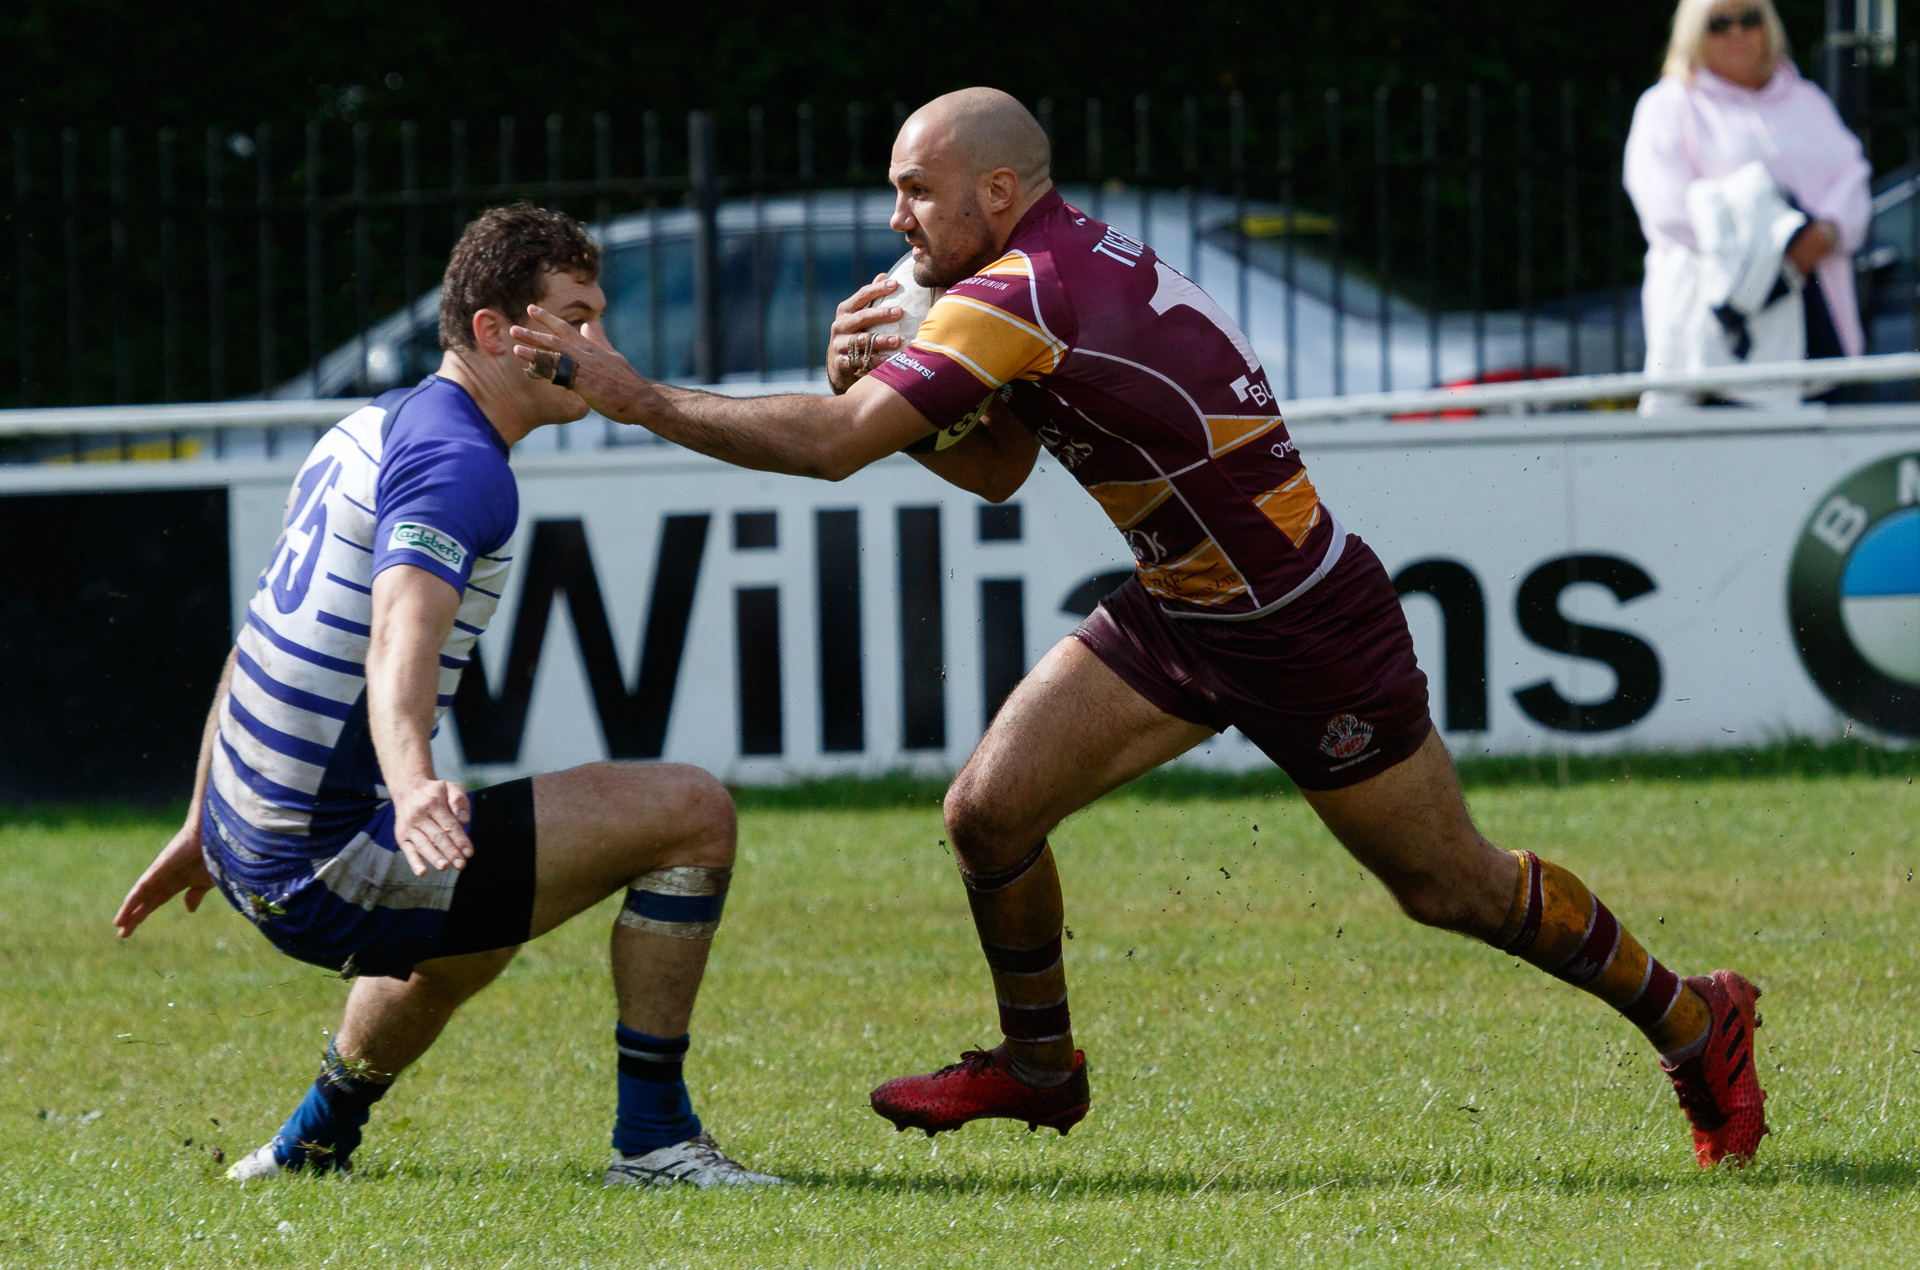 CONSOLATION: Rob Holloway, right, scored a late try for Sedgley Park in their defeat at Tynedale that secured a bonus point